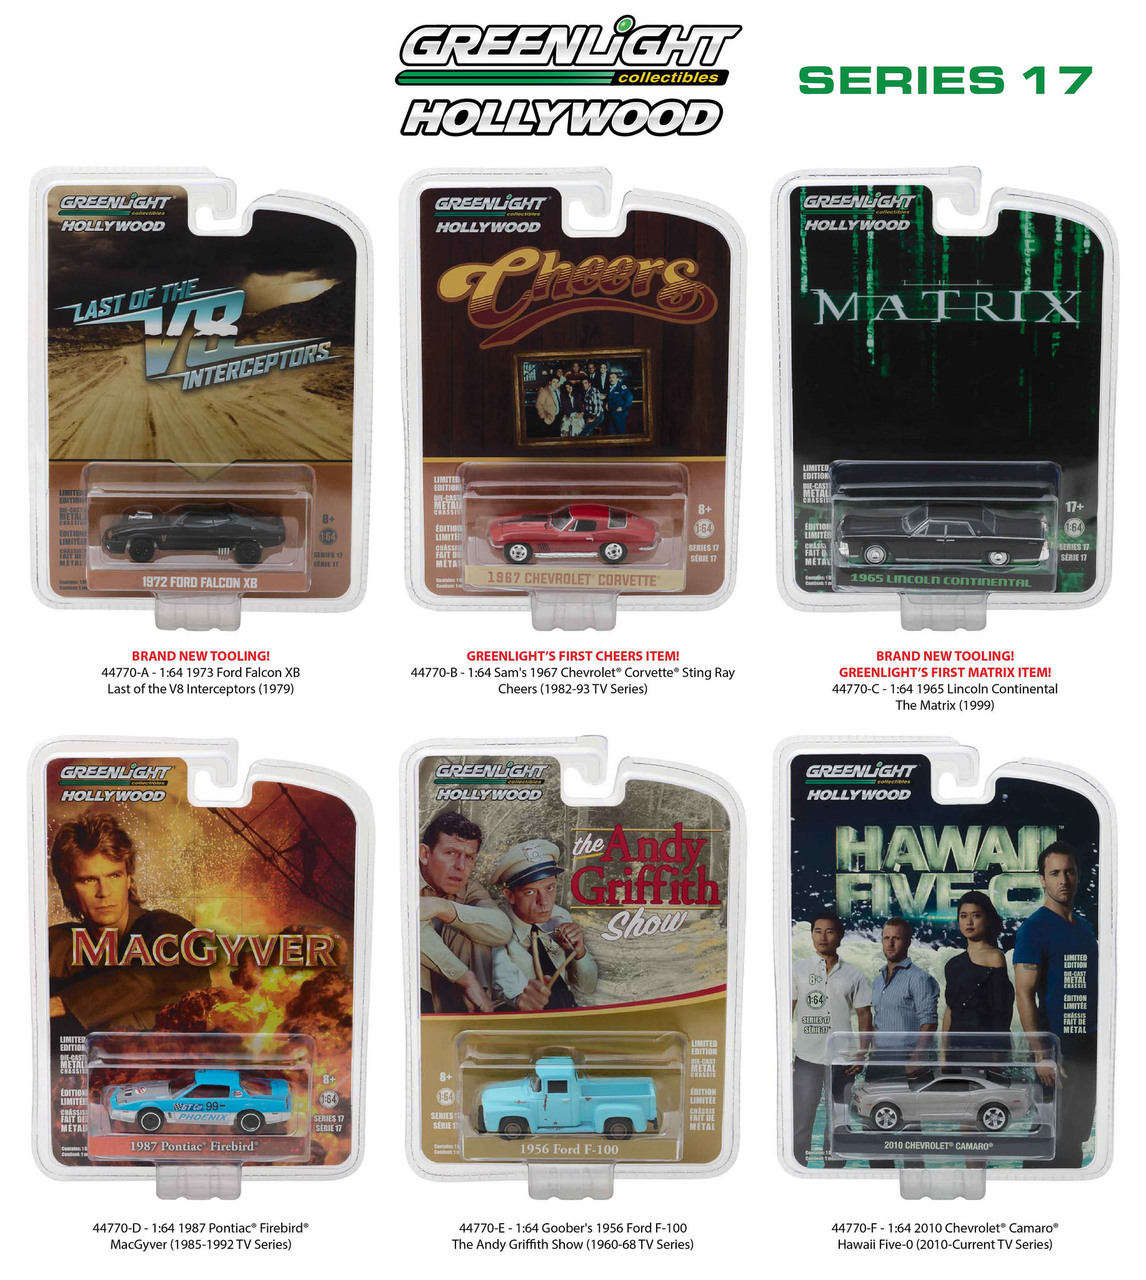 Hollywood Series / Release 17 6pc Diecast Car Set 1/64 Diecast Model Cars by Greenlight